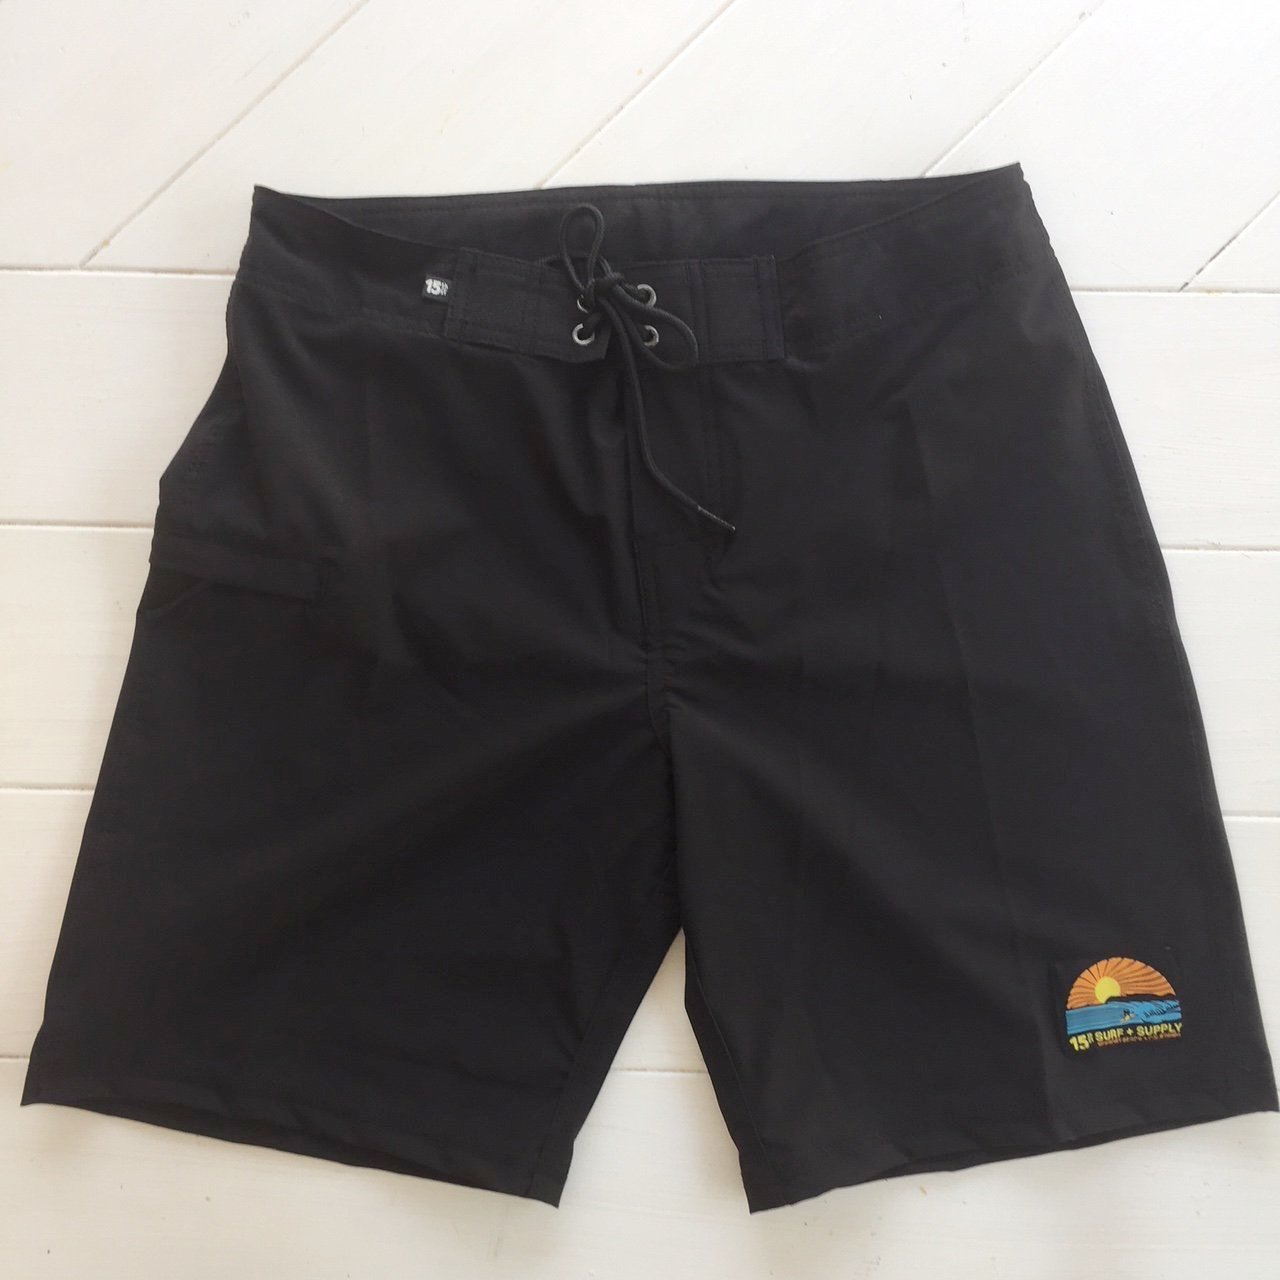 15th St Boardshorts 18""